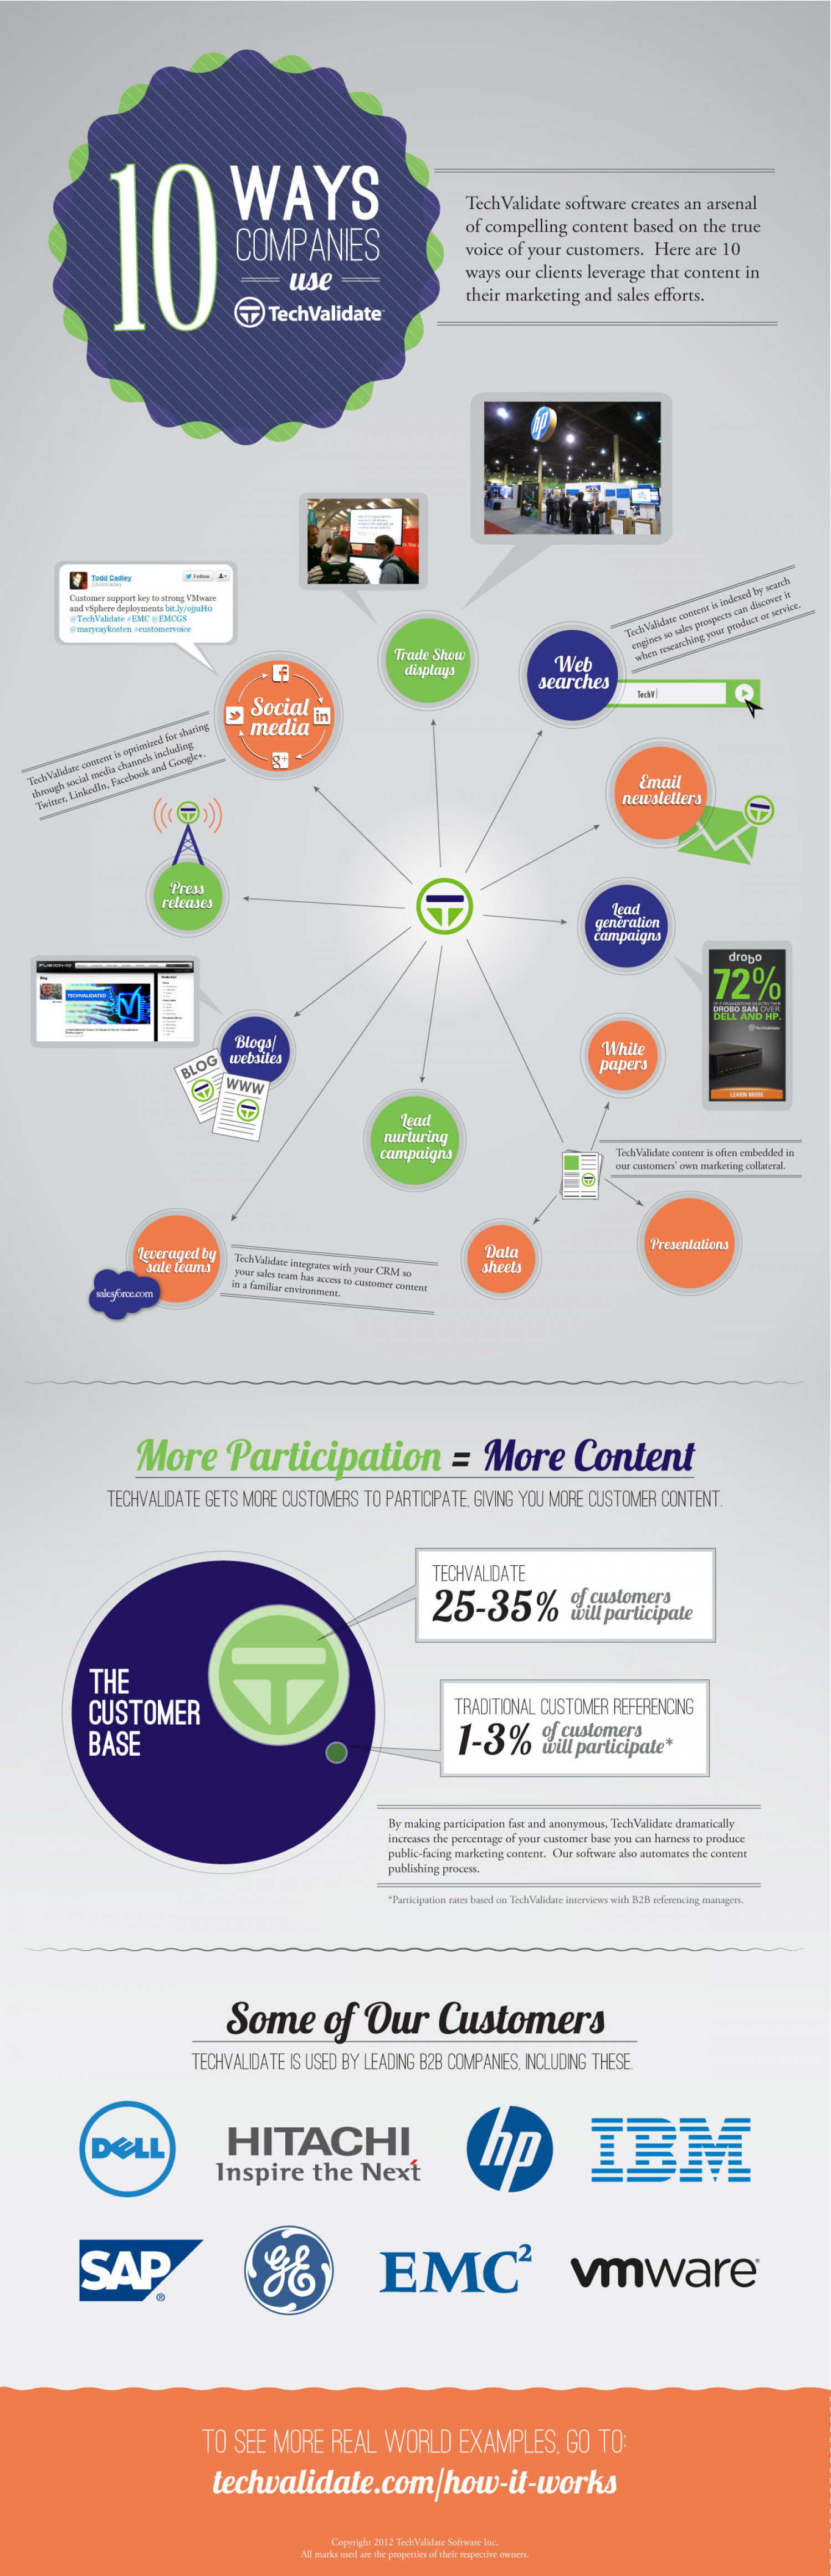 10 Ways Companies Use TechValidate Infographic